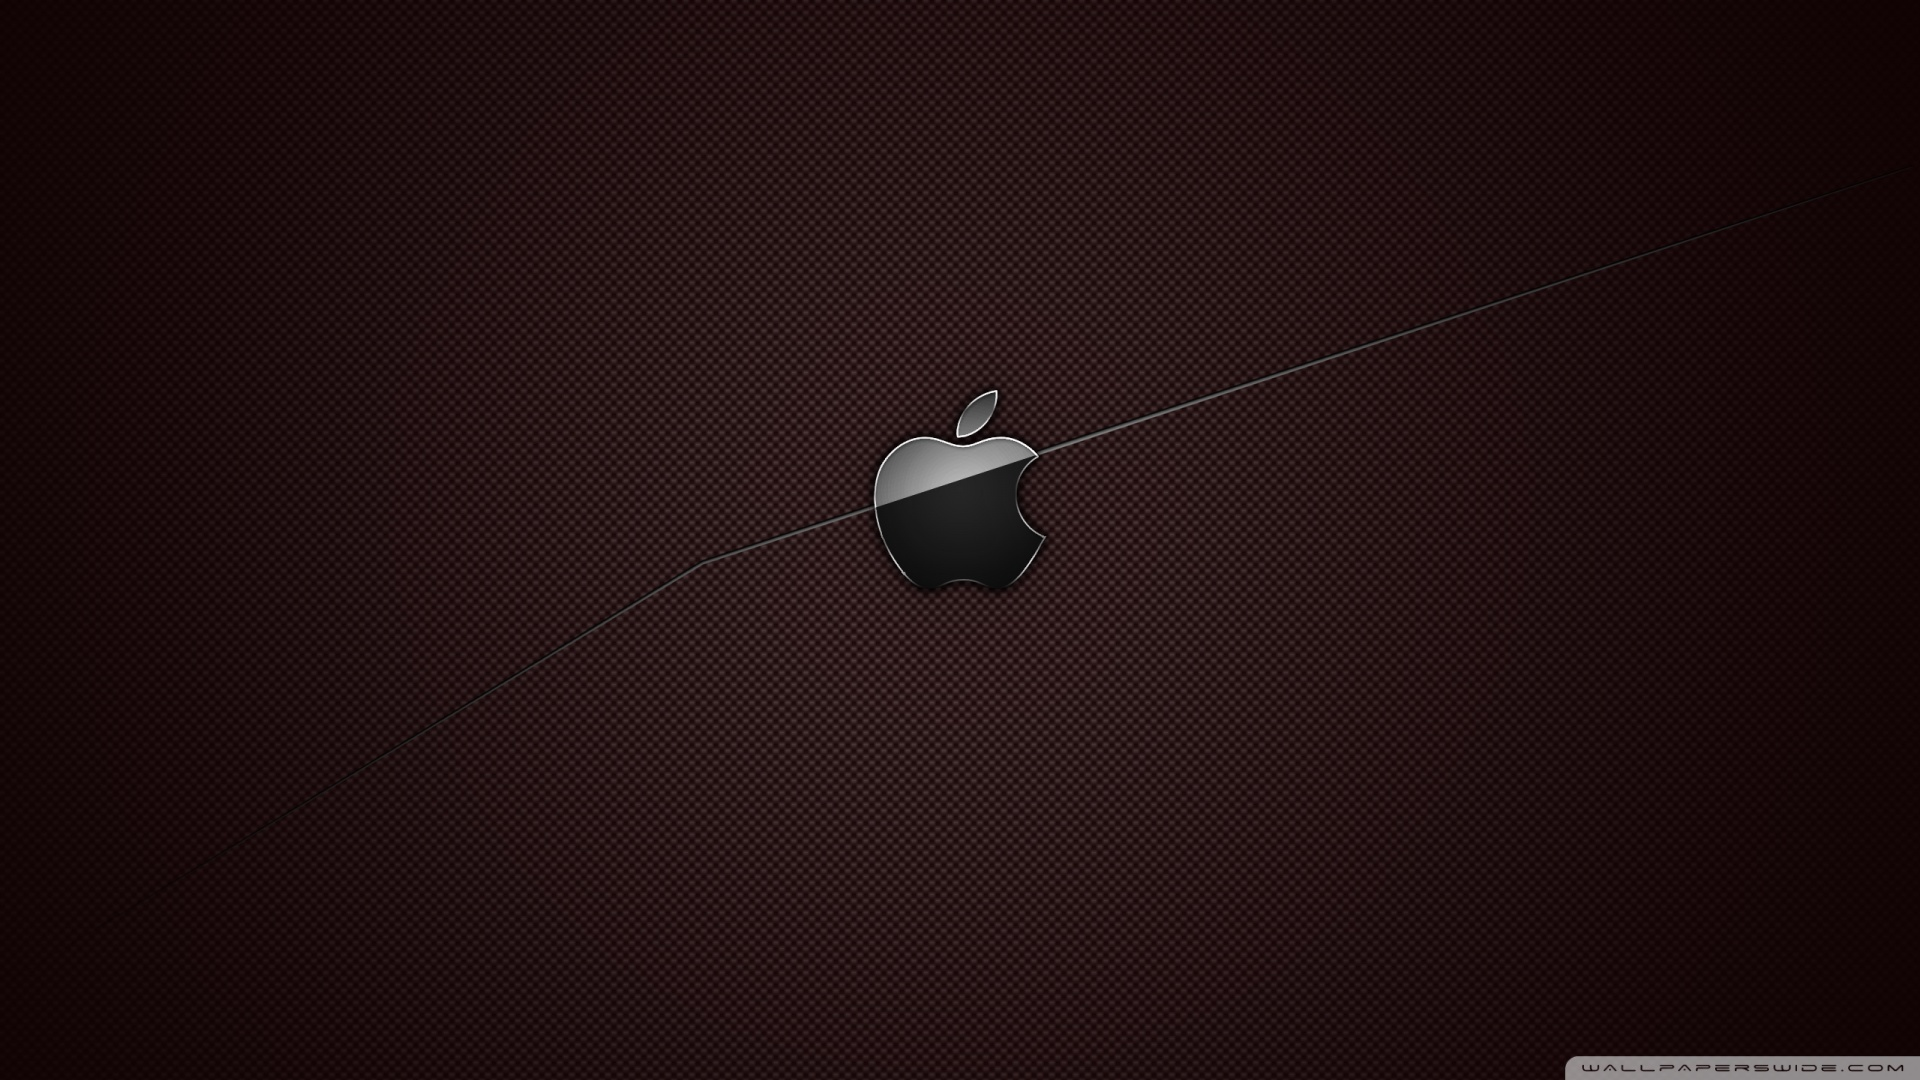 Free Download Apple Wallpaper Think Different Wallpaper